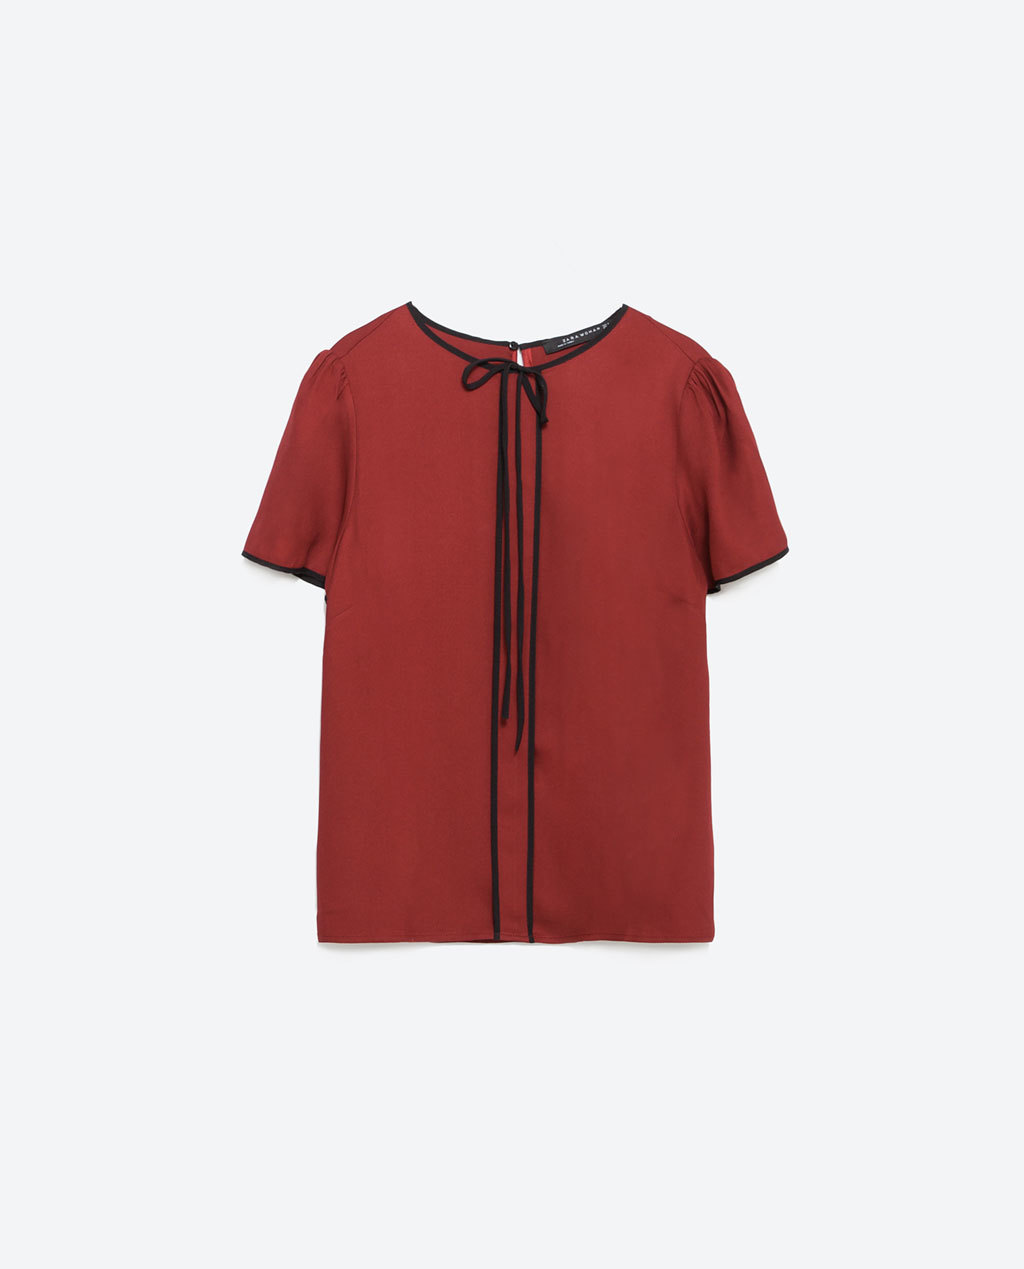 Top With Contrast Piping - pattern: plain; predominant colour: true red; secondary colour: black; occasions: casual, work, creative work; length: standard; style: top; fit: straight cut; neckline: crew; sleeve length: short sleeve; sleeve style: standard; texture group: jersey - stretchy/drapey; season: a/w 2015; wardrobe: highlight